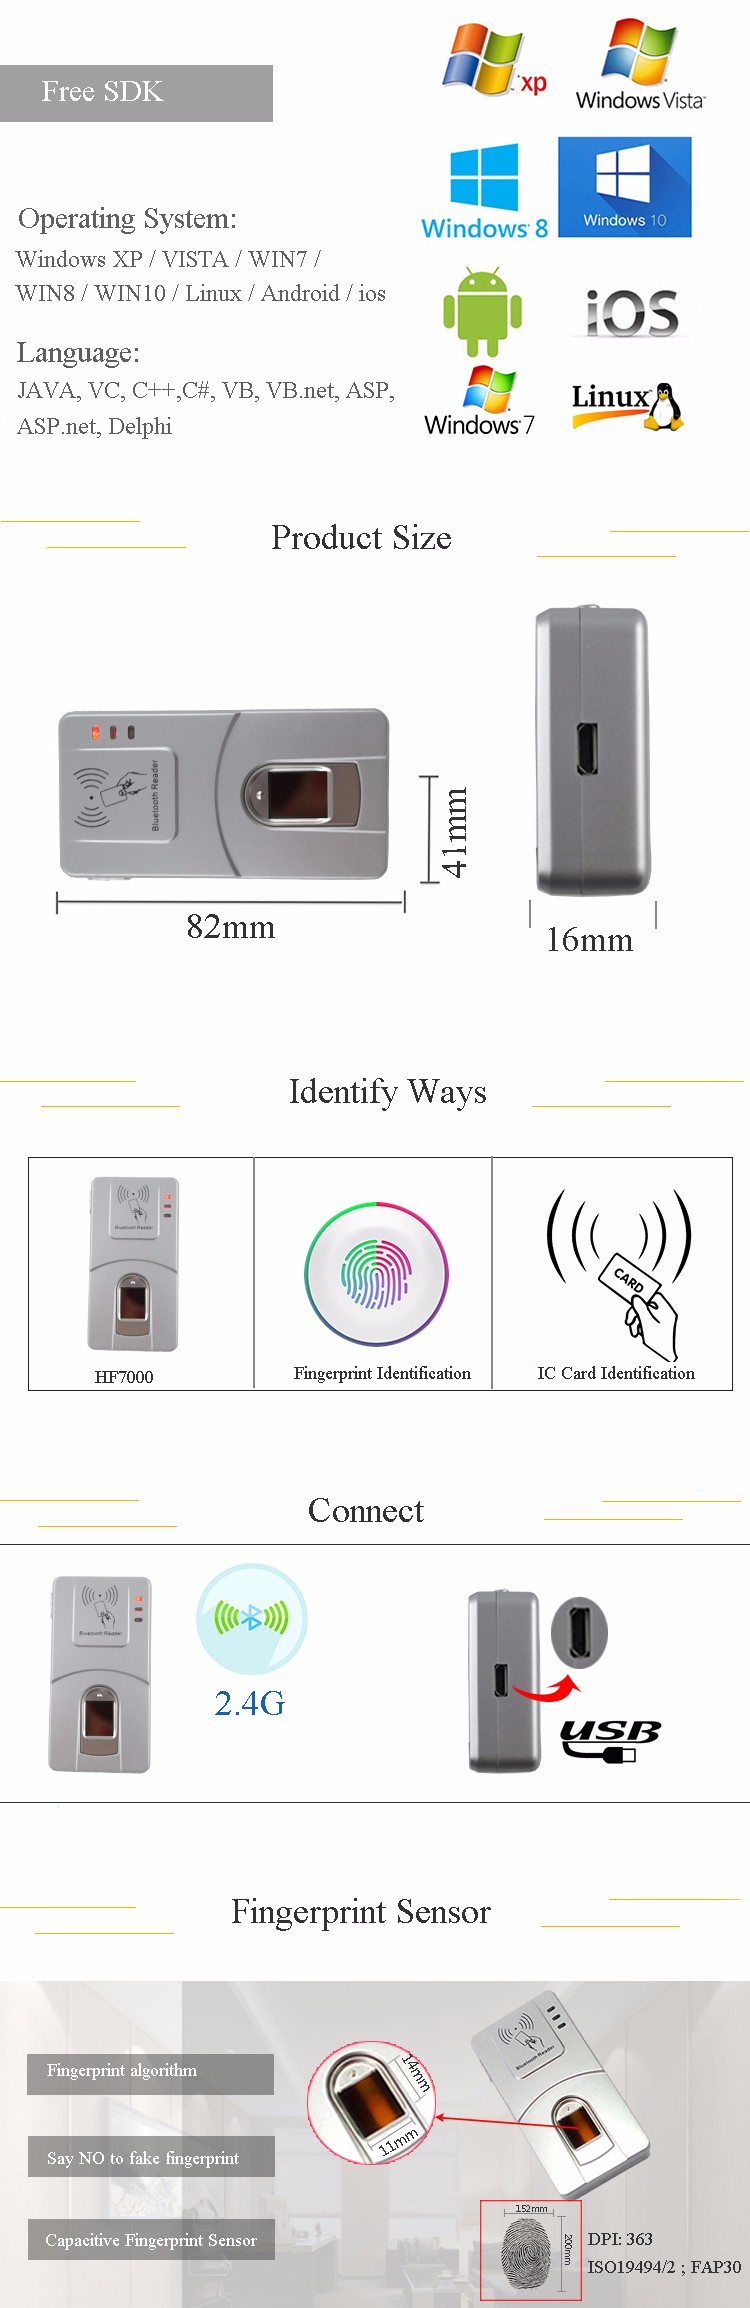 HF7000 Bluetooth Wireless USB Fingerprint Scanner Capacitive Biometric Fingerprint Reader